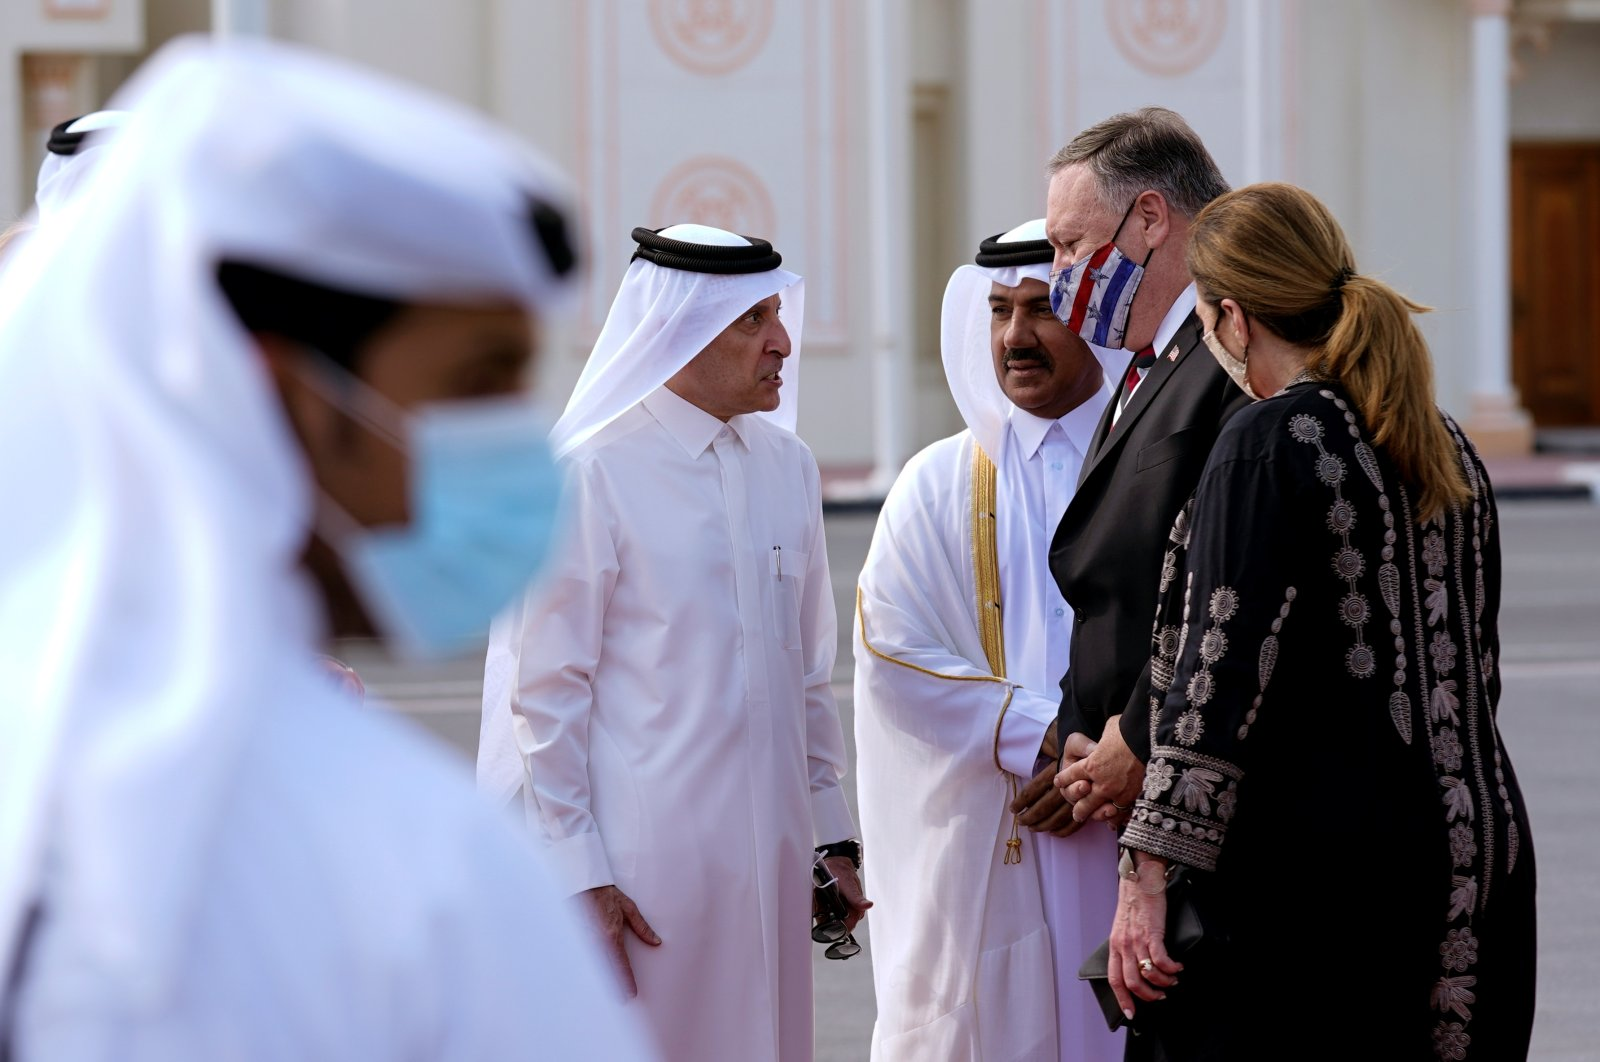 Qatar Airways CEO Akbar Al Baker and Qatari Ministry of Foreign Affairs secretary general Ahmed bin Hassan Al Hammadi greet U.S. Secretary of State Mike Pompeo, and his wife Susan as they arrive at Old Doha International Airport, Qatar, Nov. 21, 2020. (Reuters Photo)